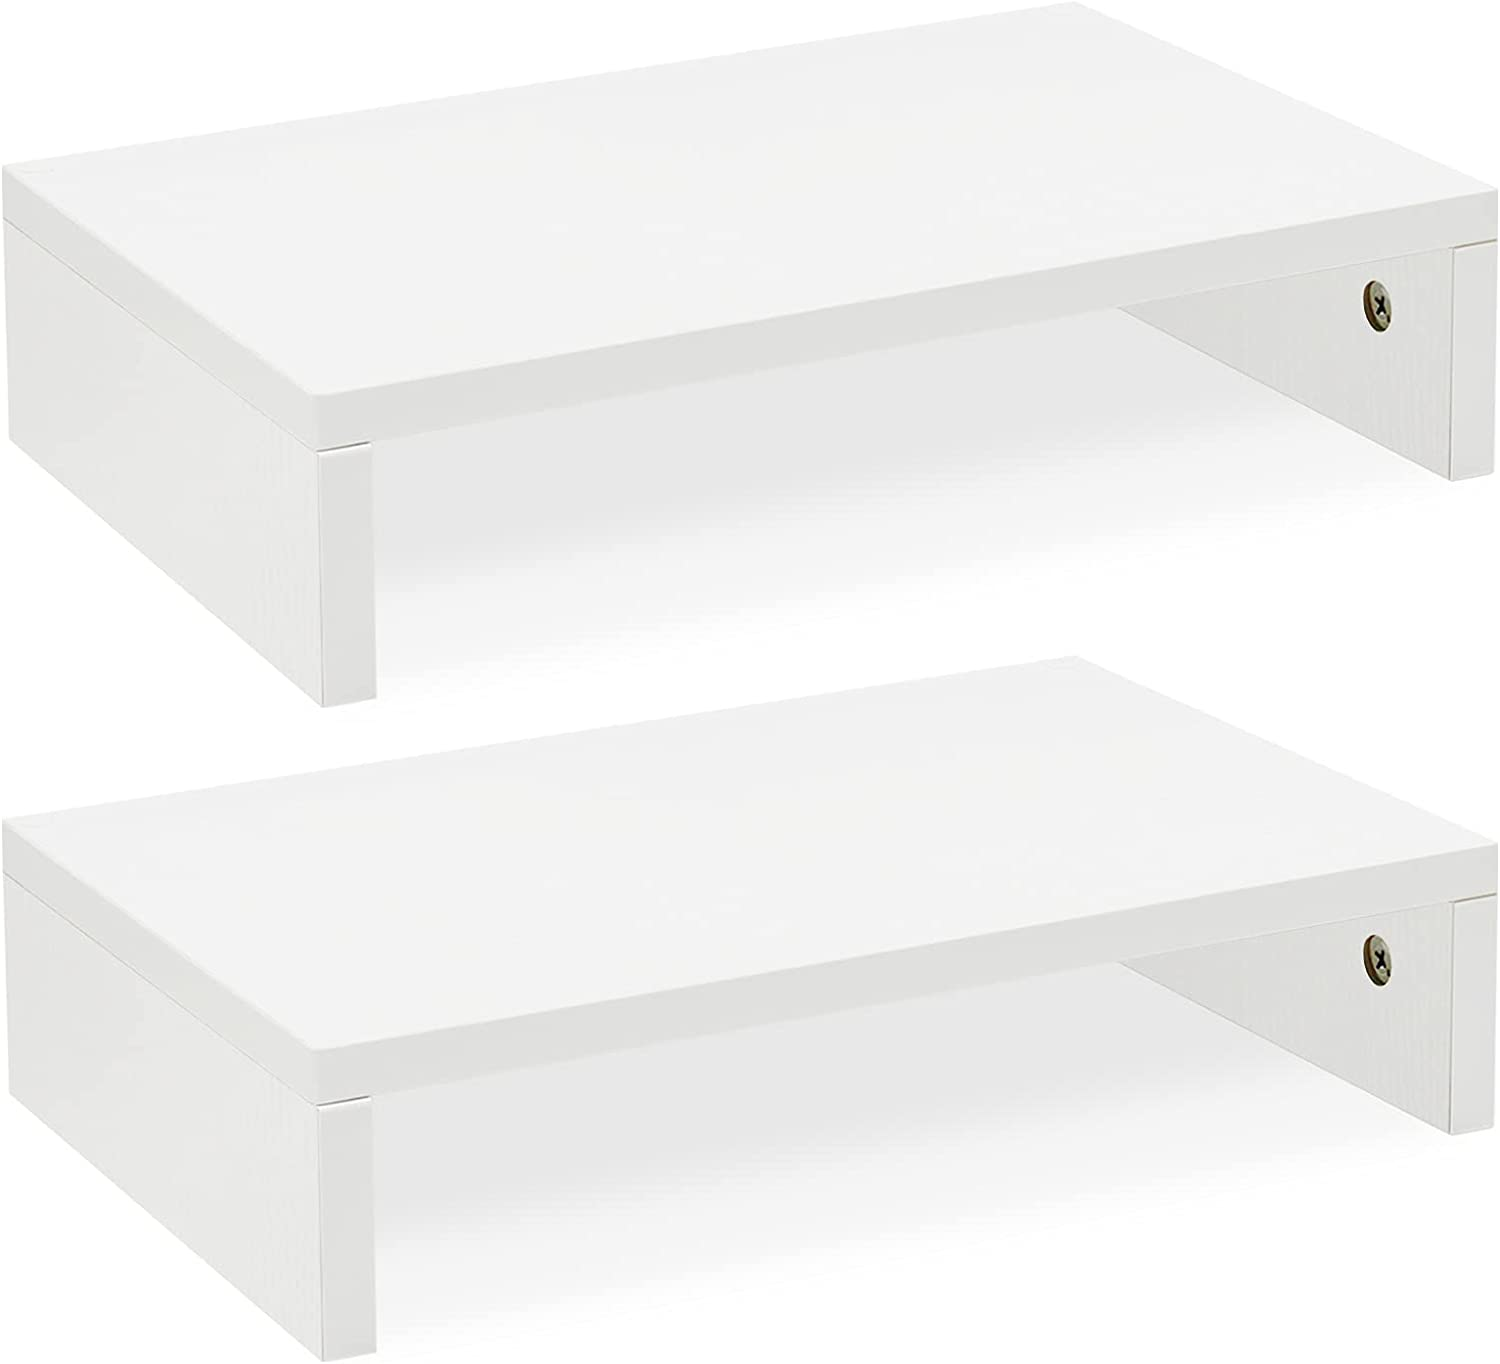 White Monitor Stand Riser-2 Pack,Wood Adjustable Monitor Stand Dual Monitor Riser for 2 Monitors/Laptop/PC Computer Stand for Desk by TEAMIX